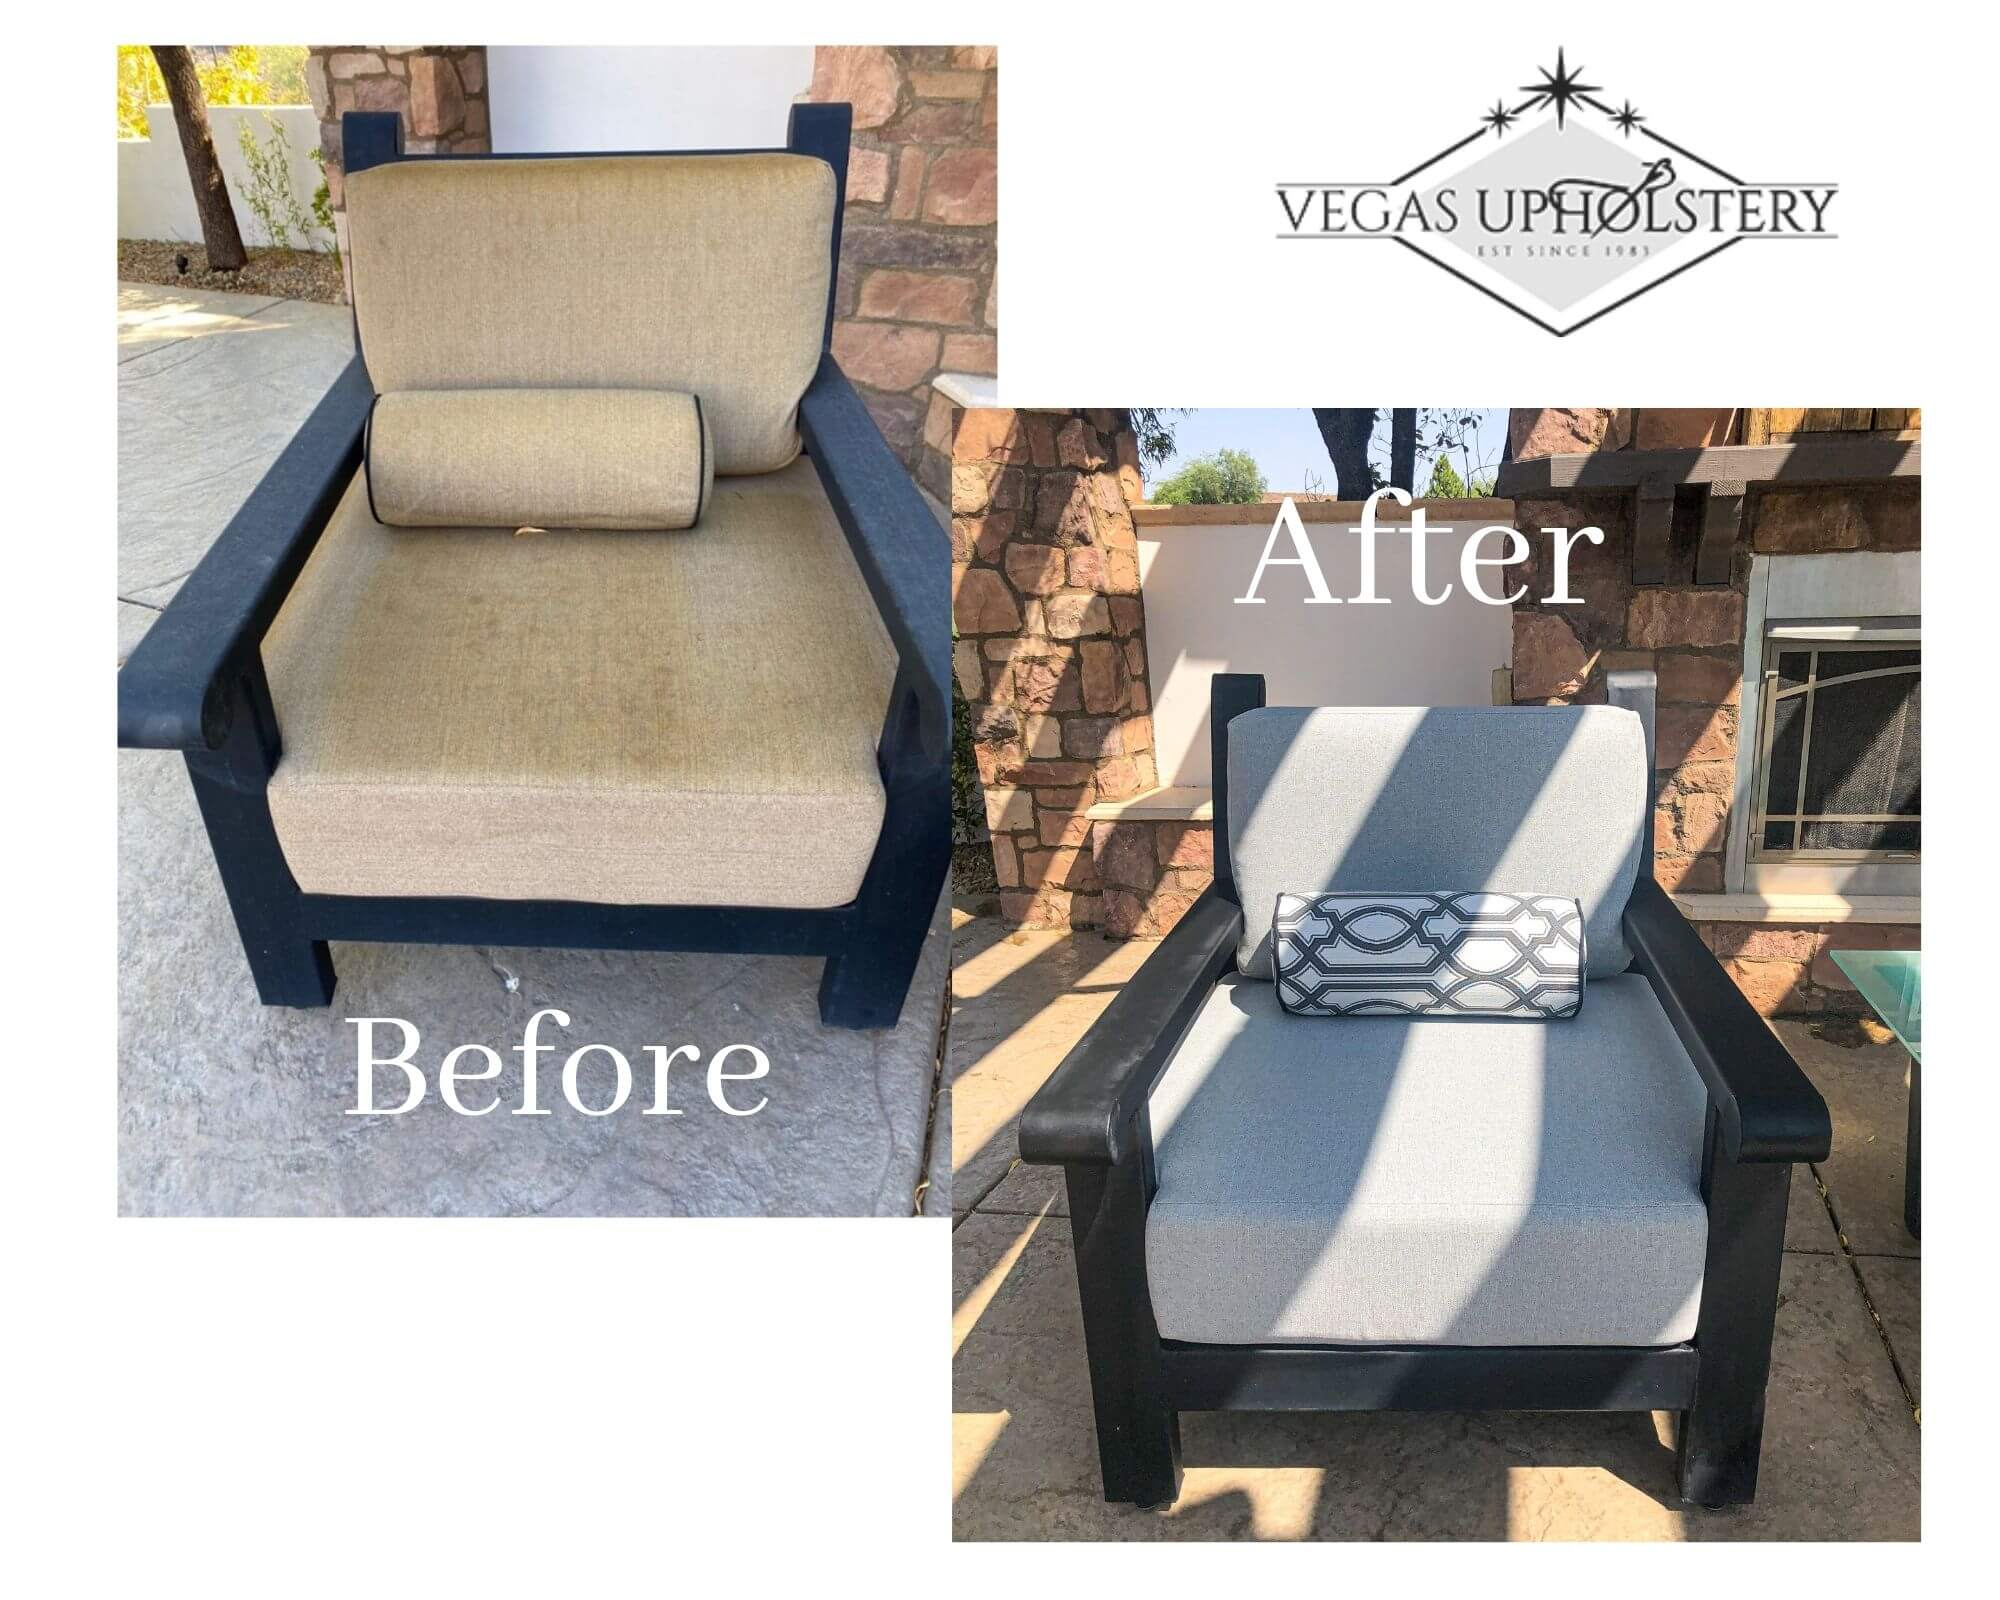 Vegas upholstery Patio Chair